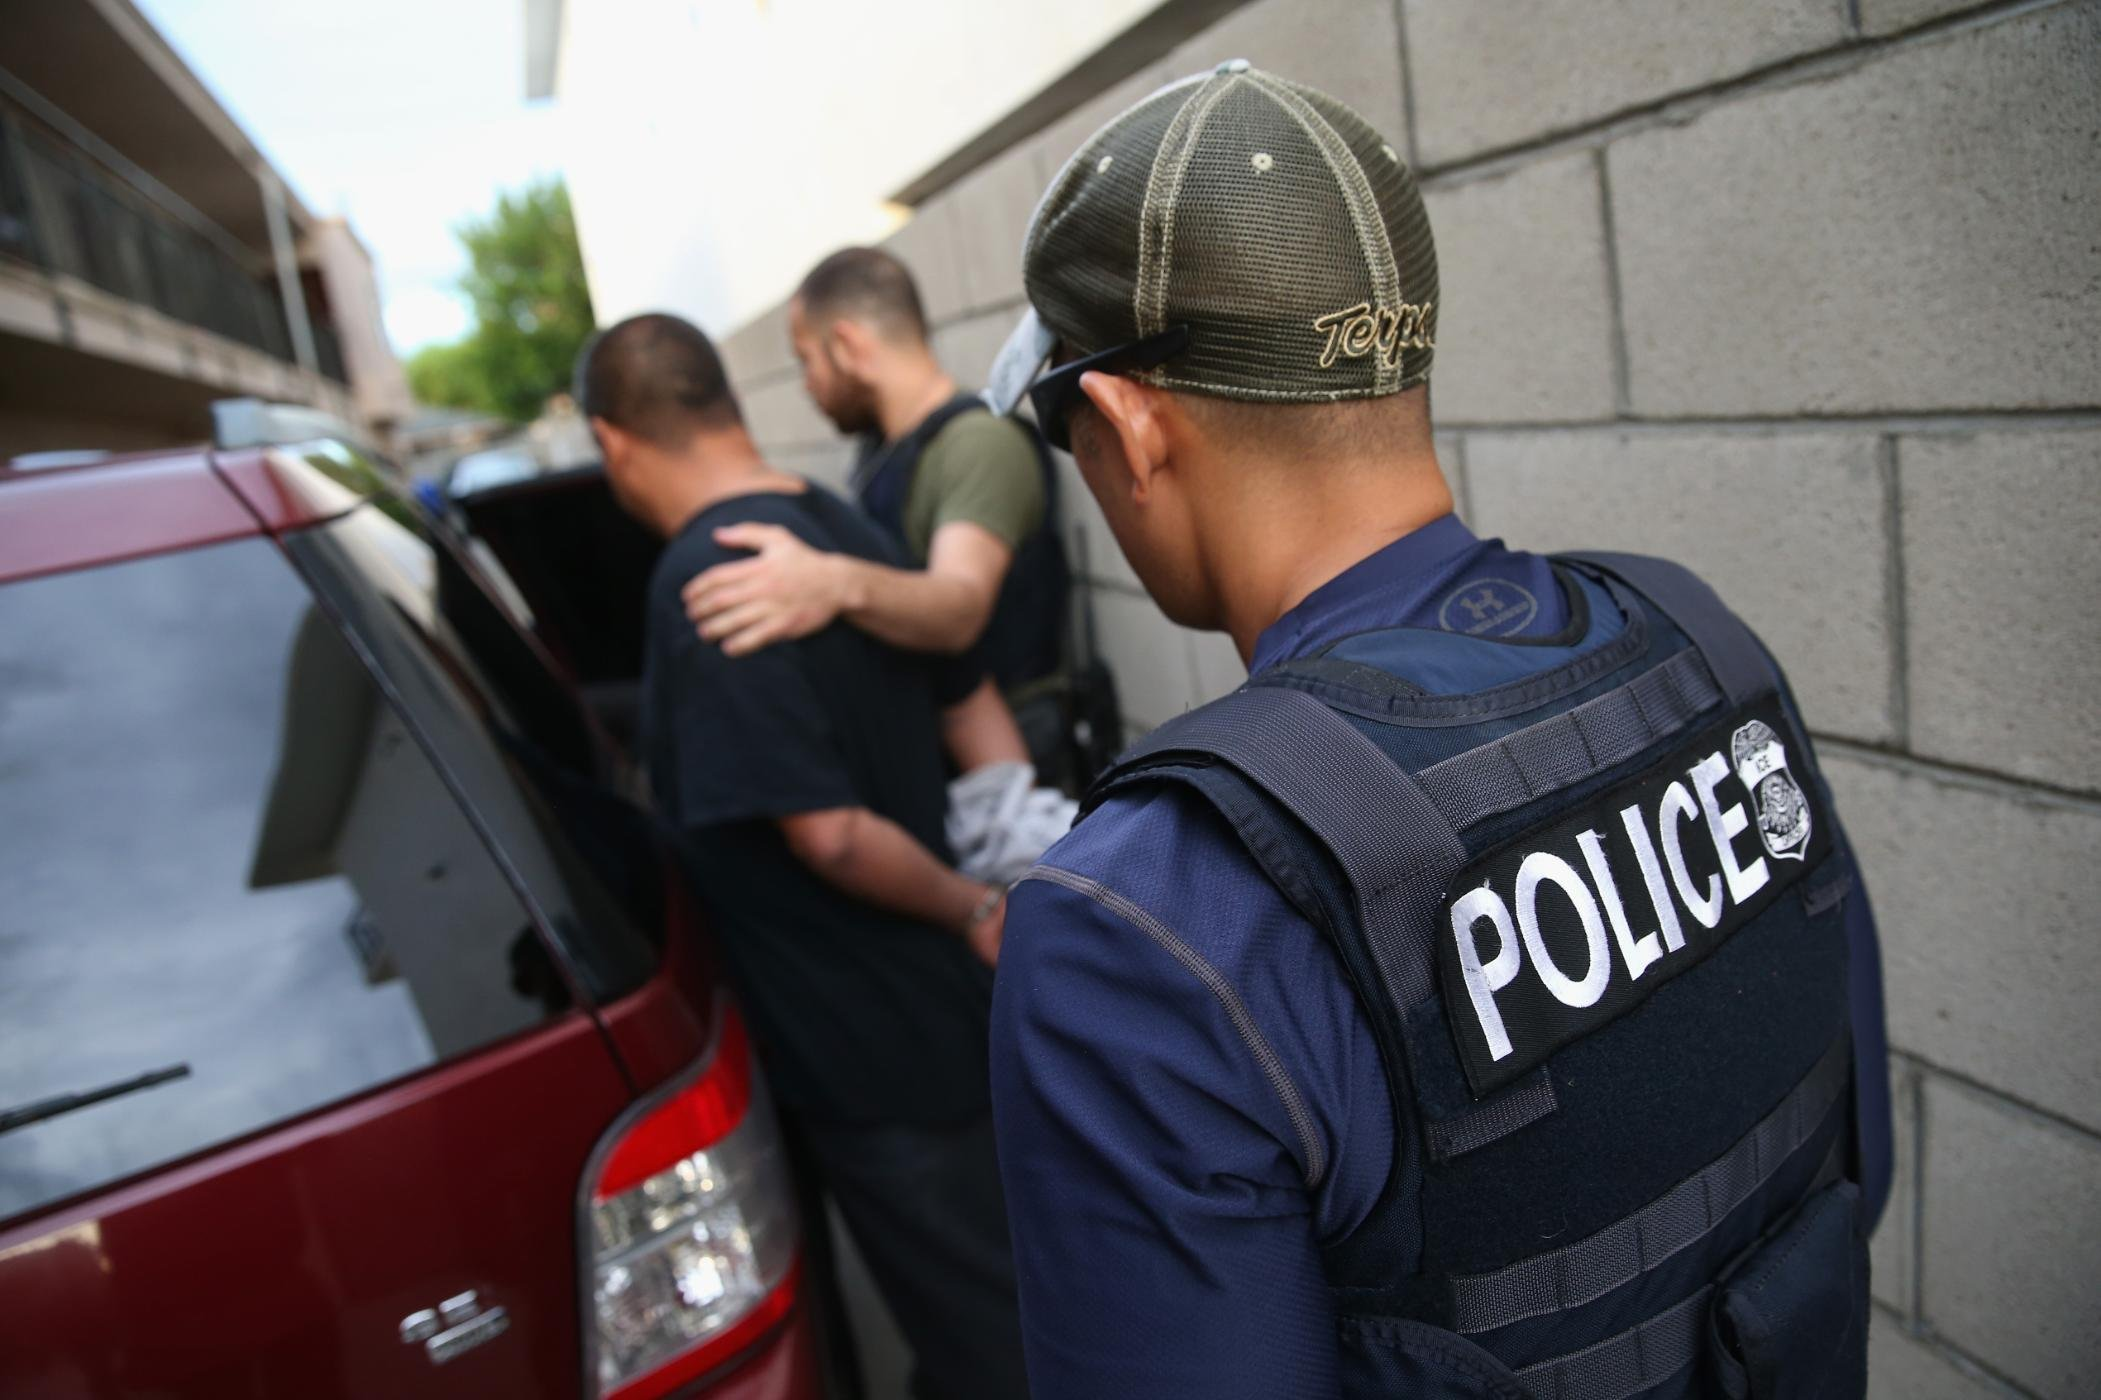 Advocates say major ICE raids haven't materialized. Trump says they've been 'very successful'